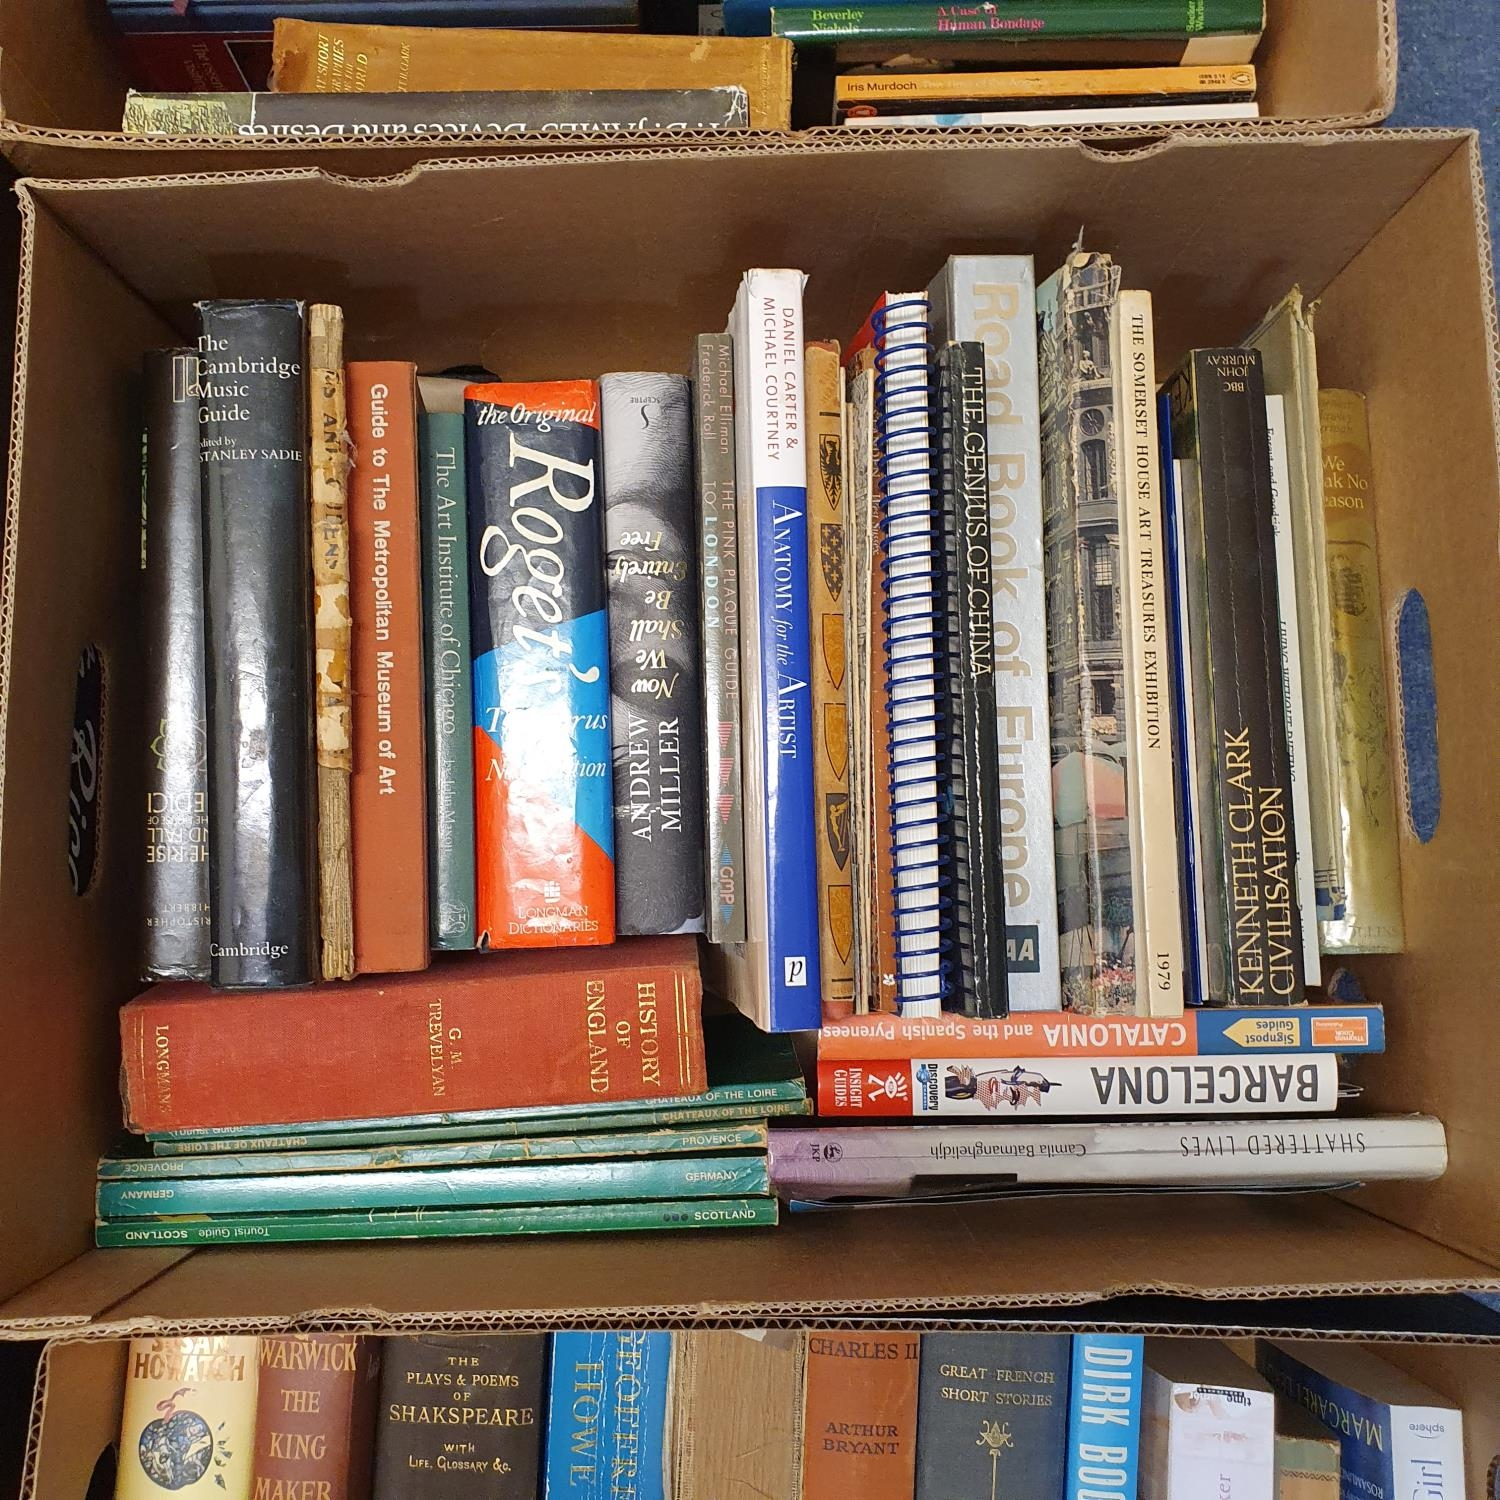 Hibbert (Christopher) London, and a large group of other books (19 boxes) - Image 5 of 21